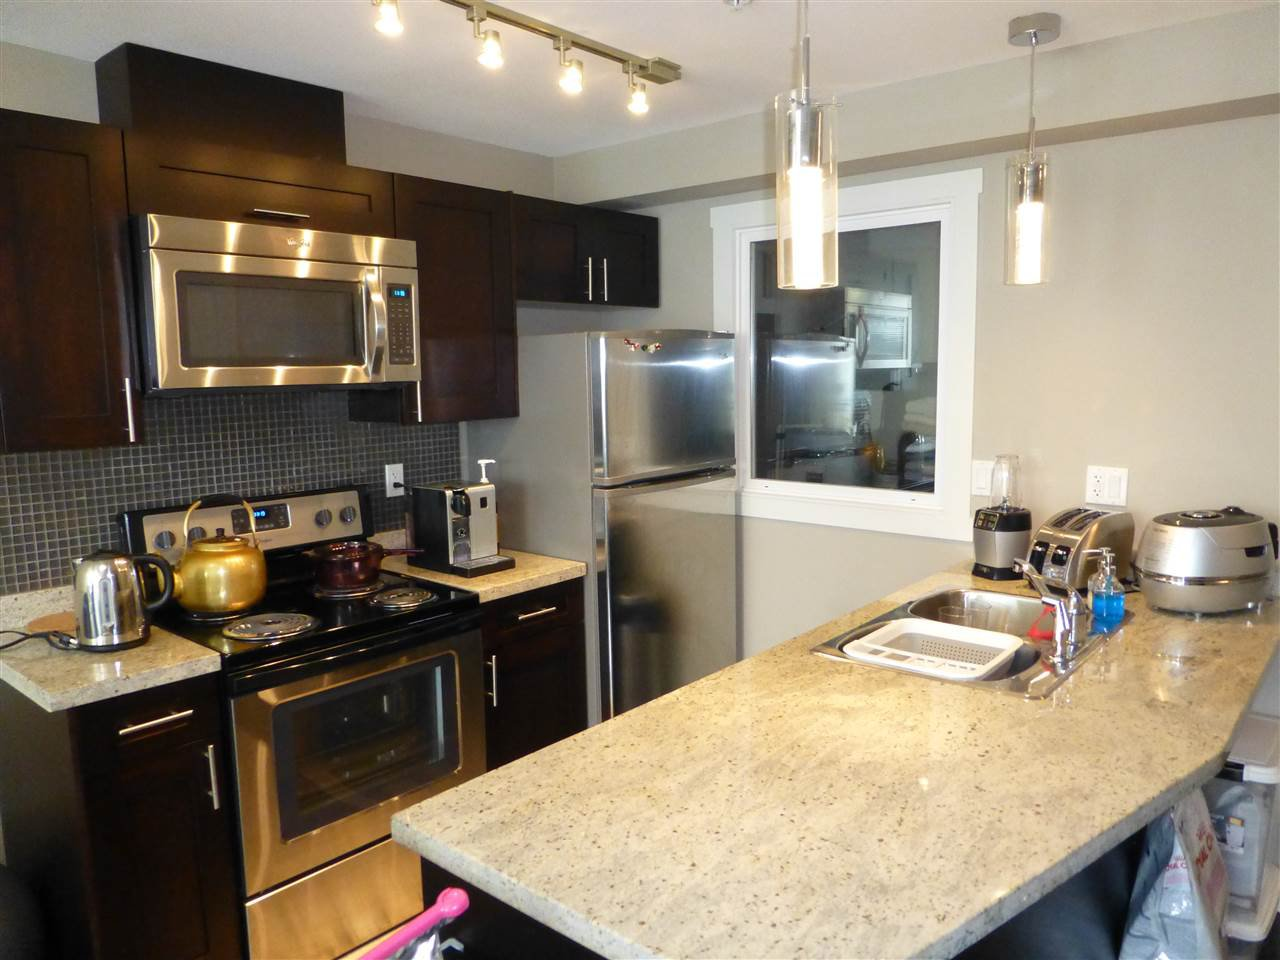 """Main Photo: 306 5488 CECIL Street in Vancouver: Collingwood VE Condo for sale in """"Cecil Hill"""" (Vancouver East)  : MLS®# R2142569"""